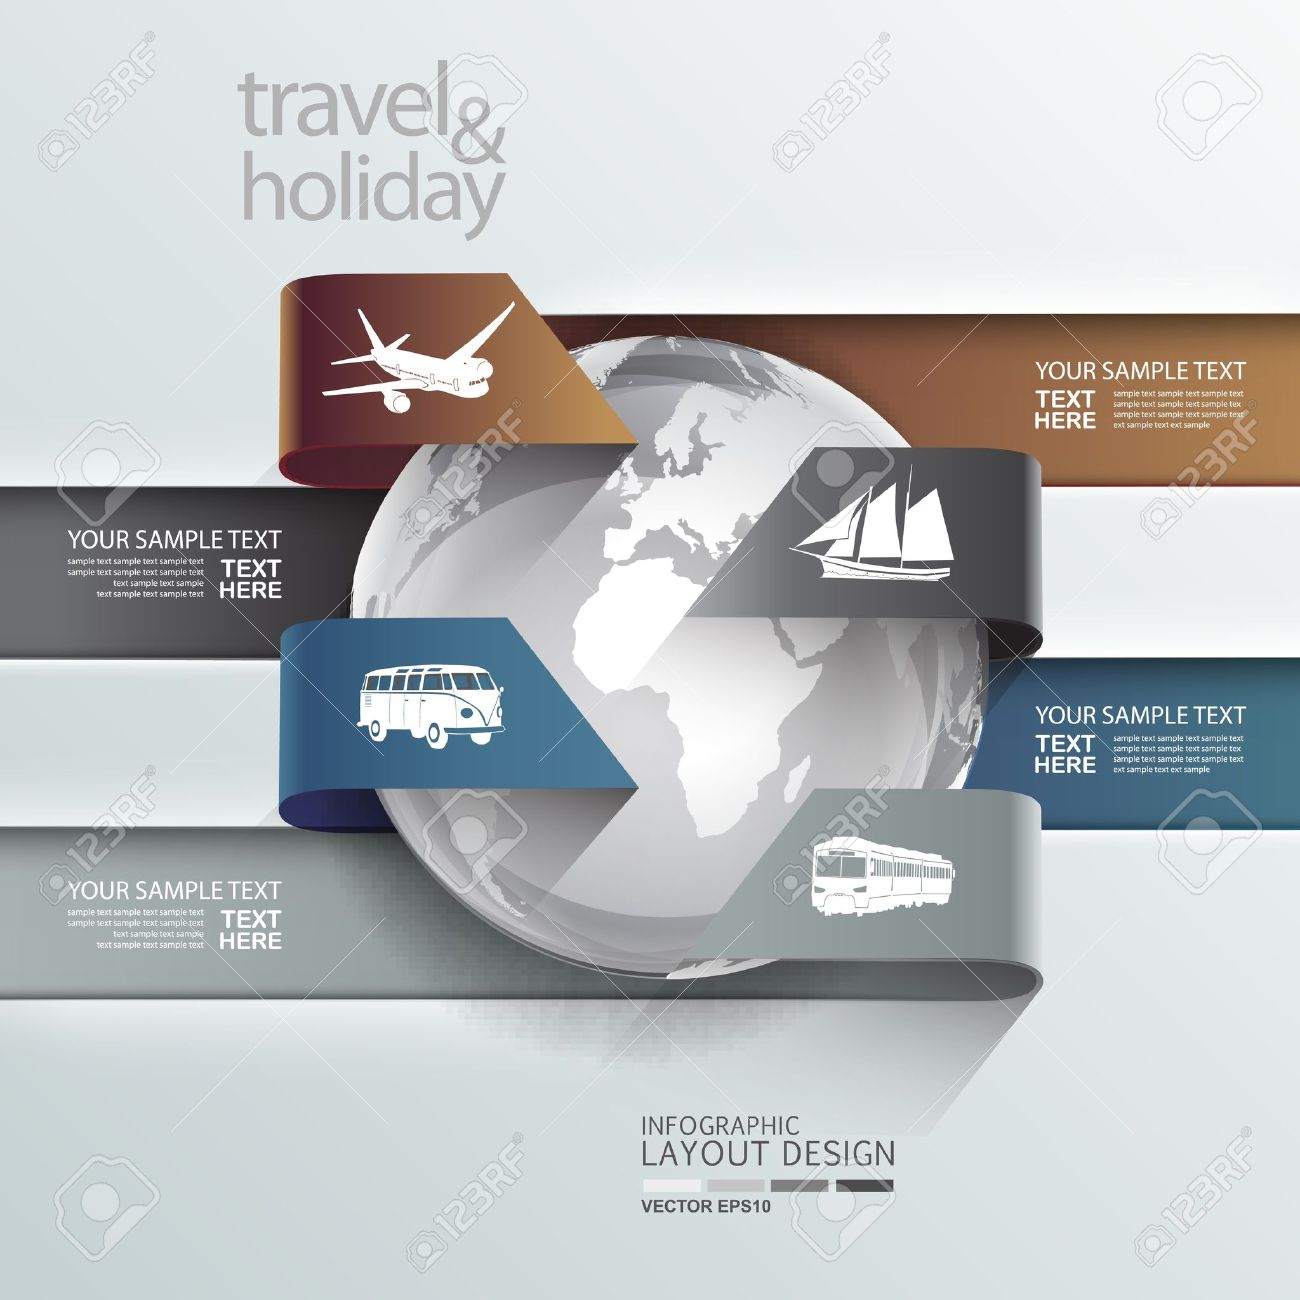 Abstract globe travel   holiday transportation element template Stock Vector - 21549648